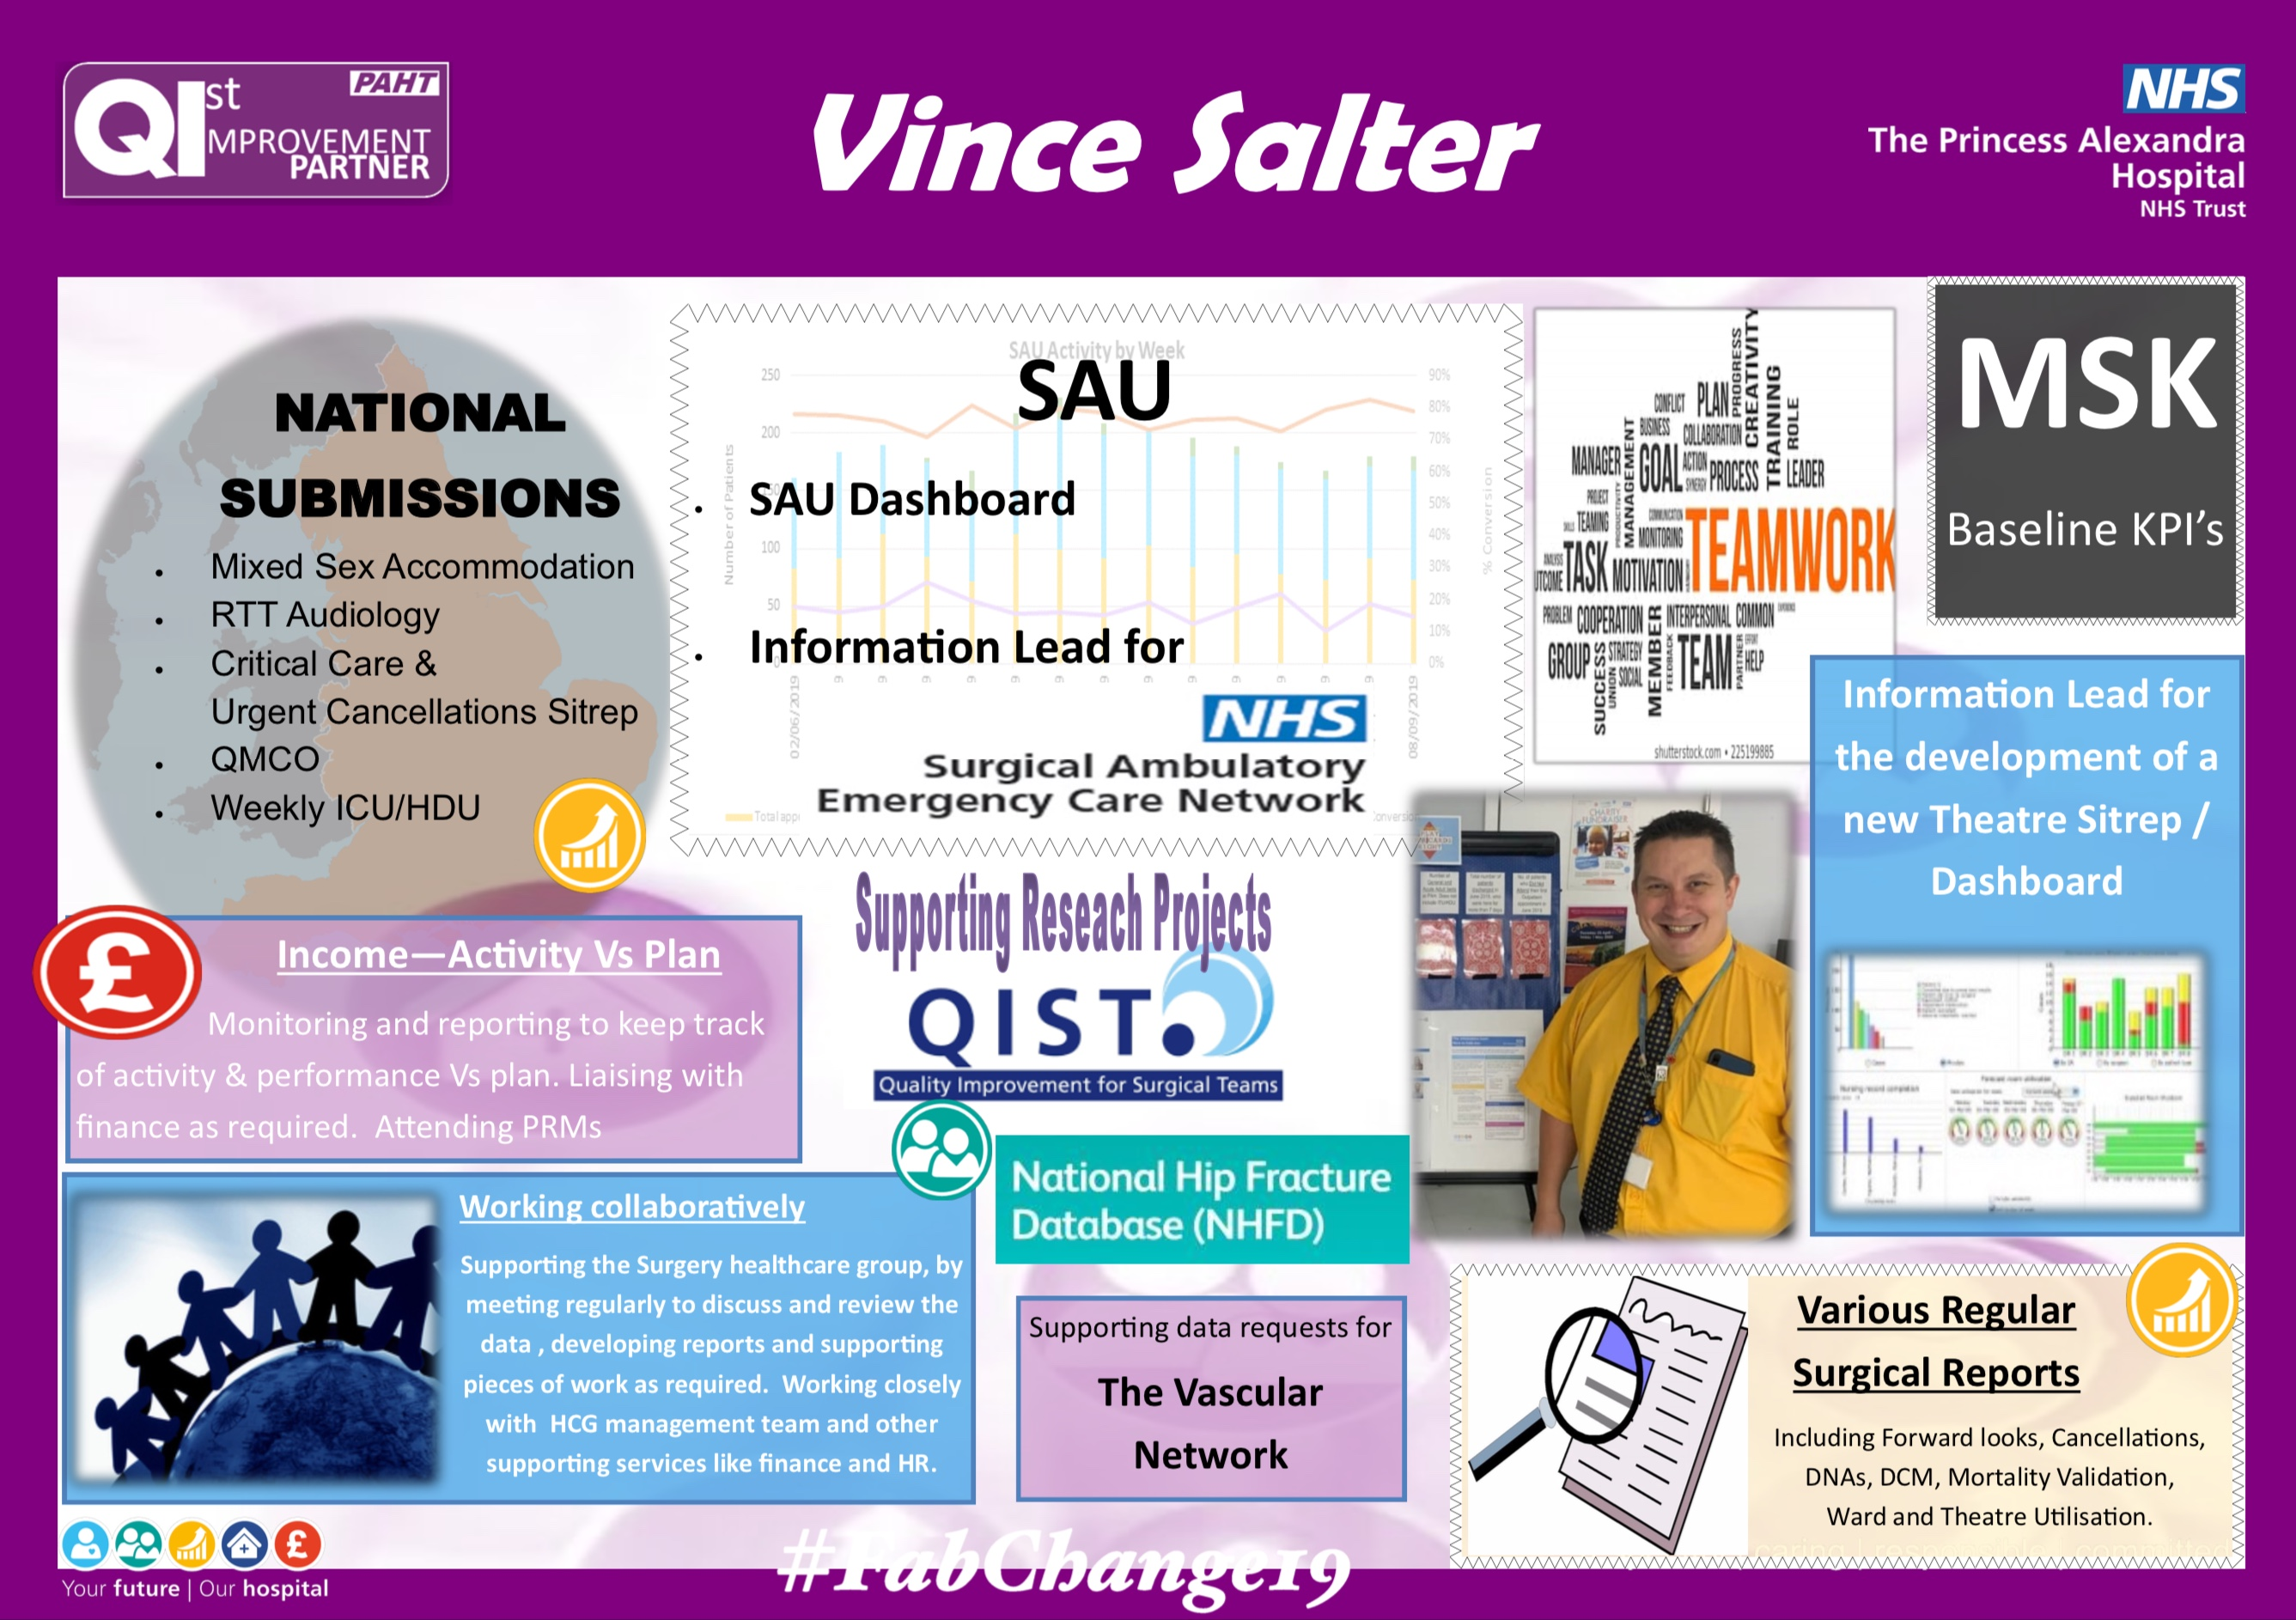 PAHT- Vince Salter and the development of the Theatre Sitrep dashboard featured image